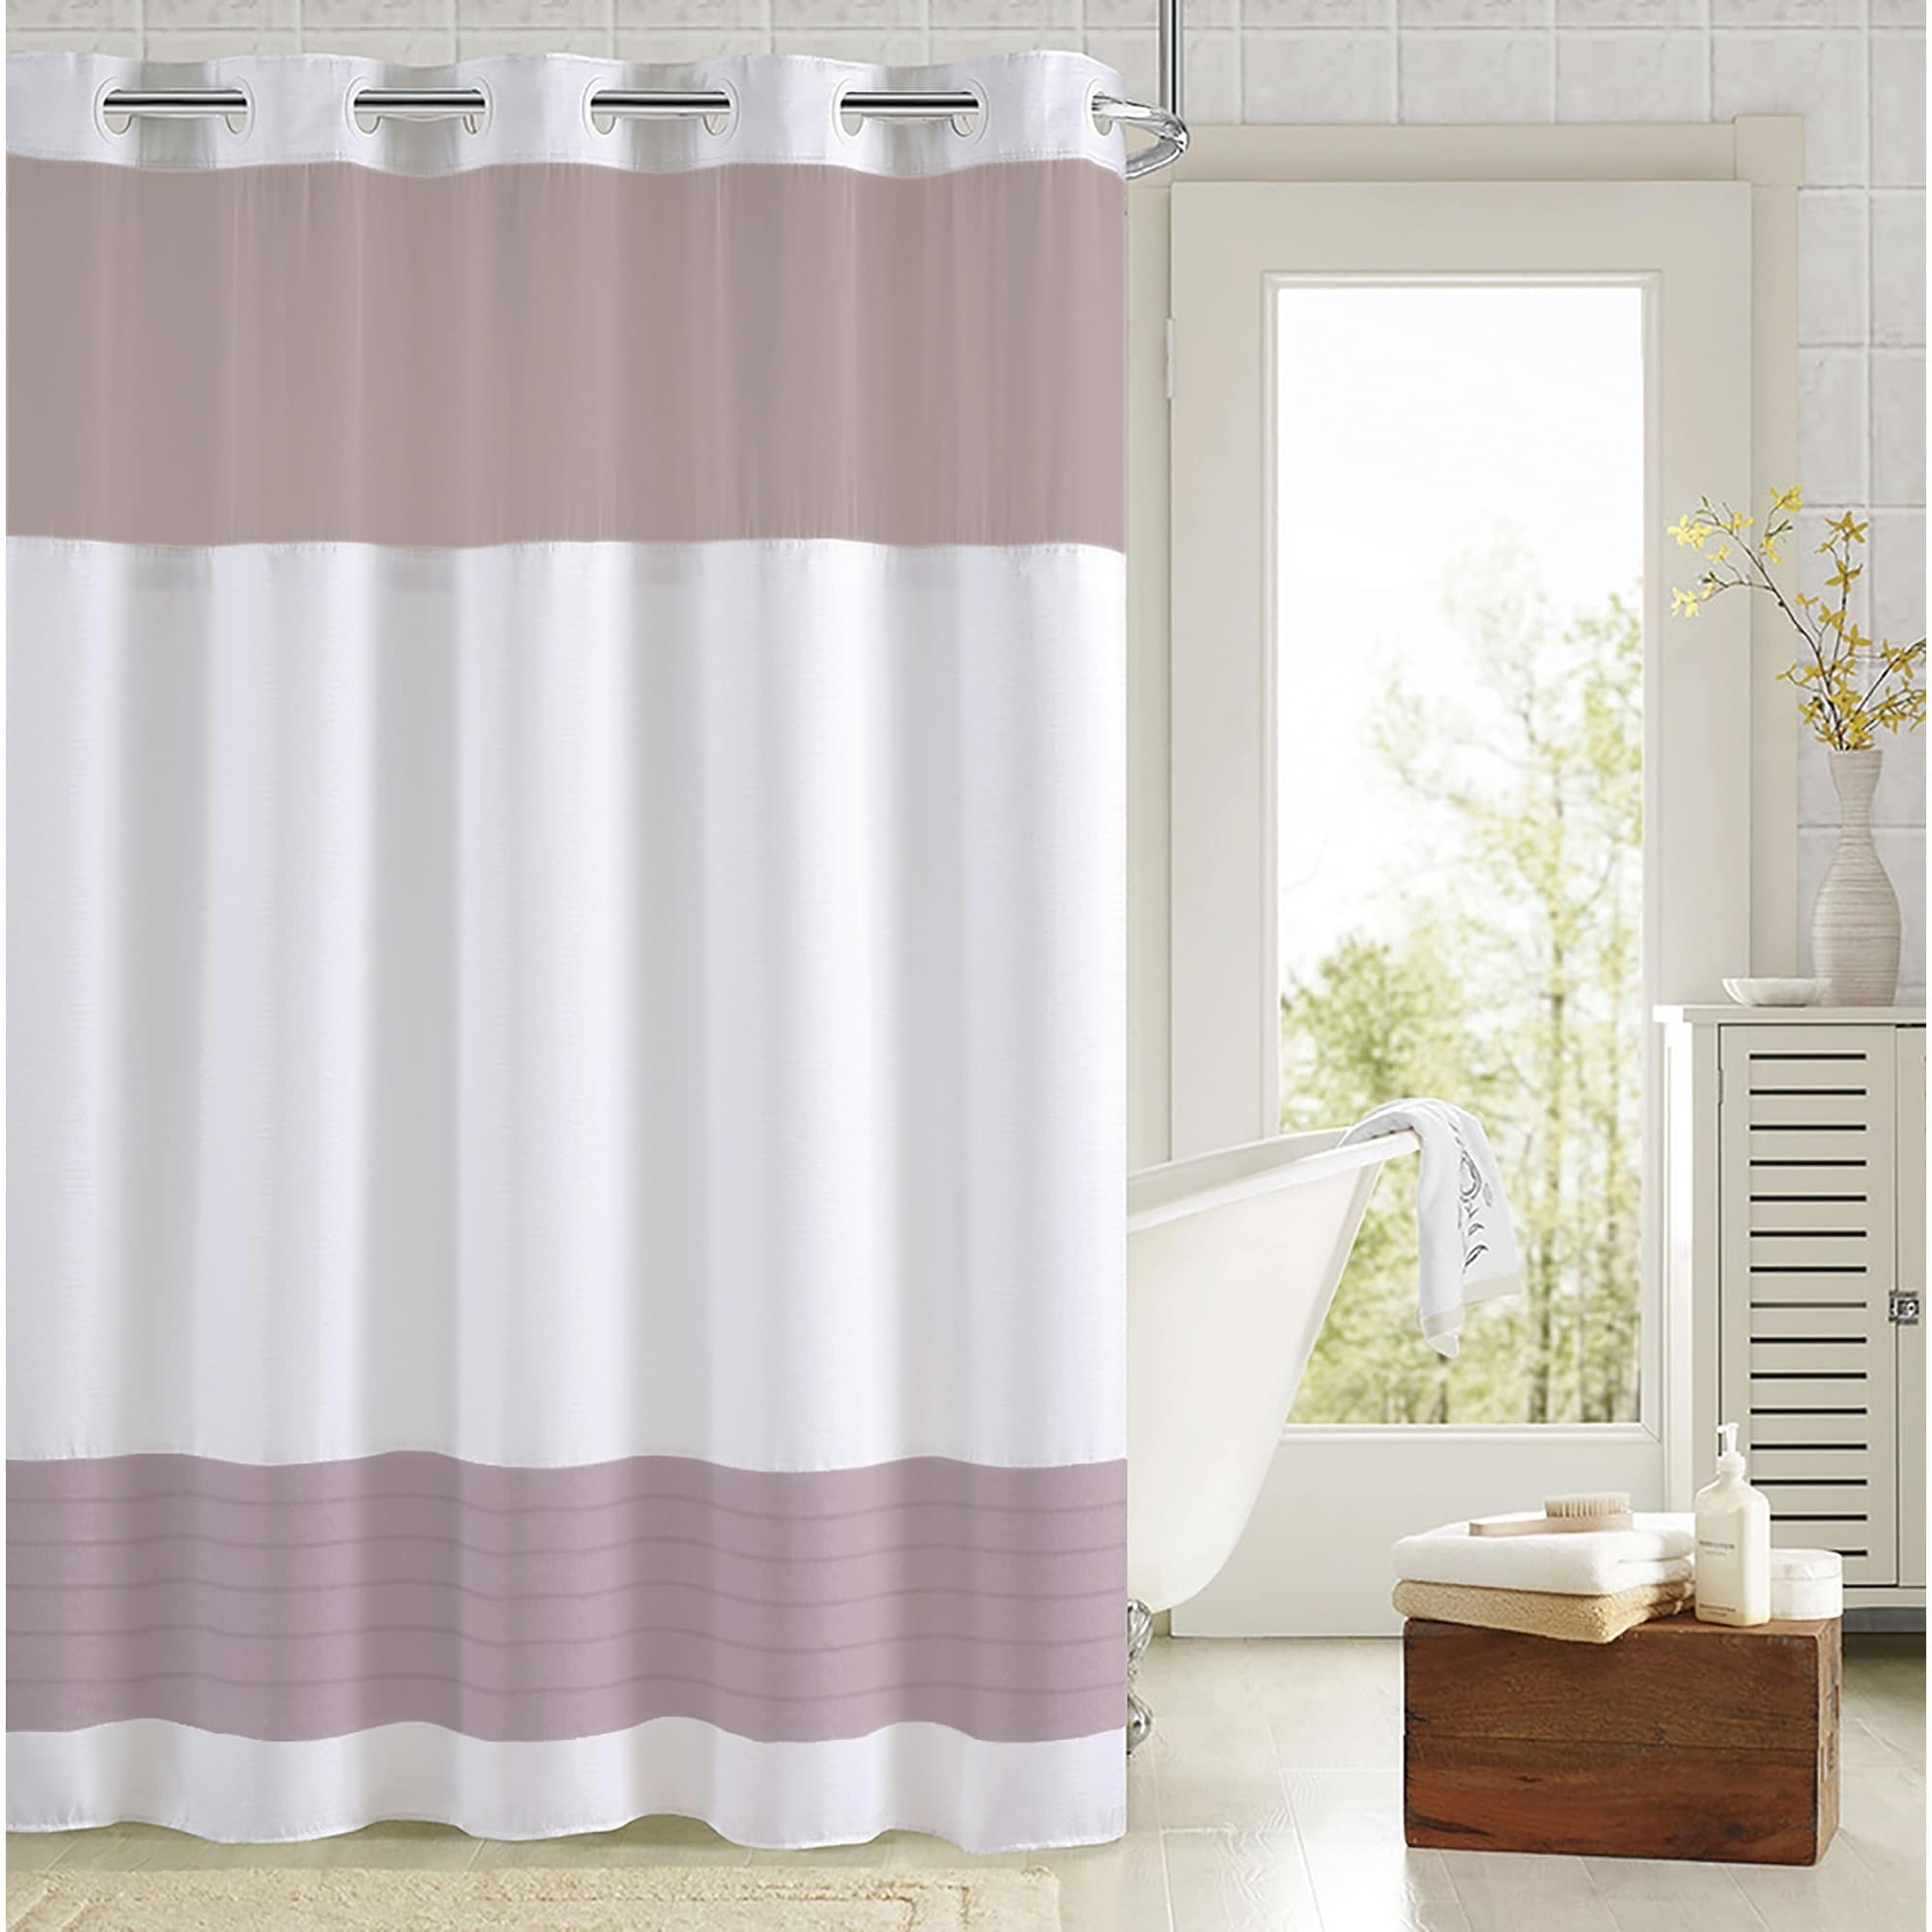 Hookless Color Block Shower Curtain With Fabric Liner Lavender